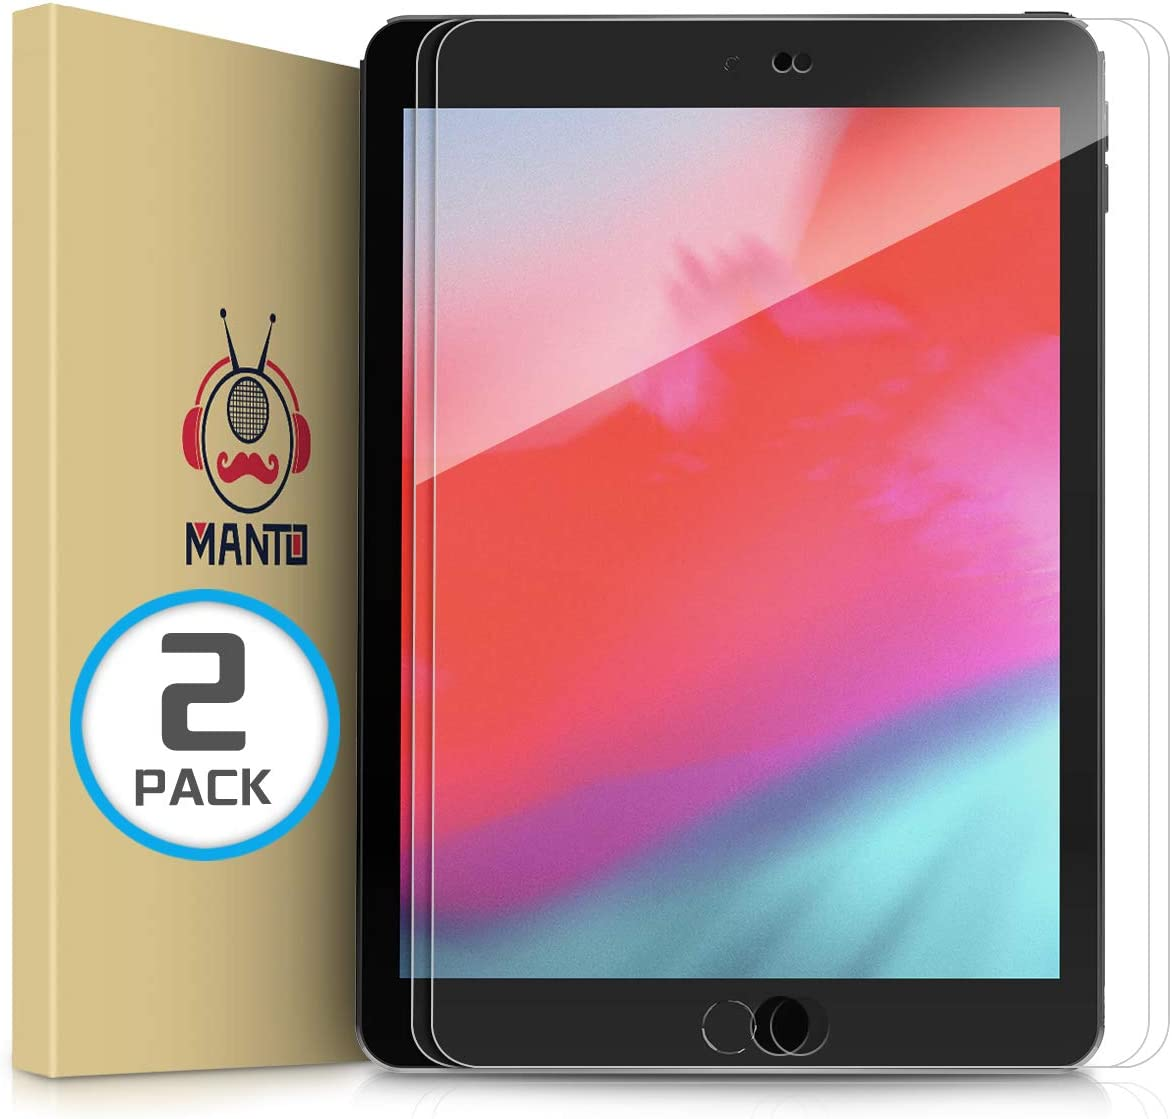 [2-Pack] MANTO Screen Protector for iPad 9.7 Inch 6th & 5th Generation, iPad Pro 9.7 Inch, iPad Air 2, iPad Air Tempered Glass Film